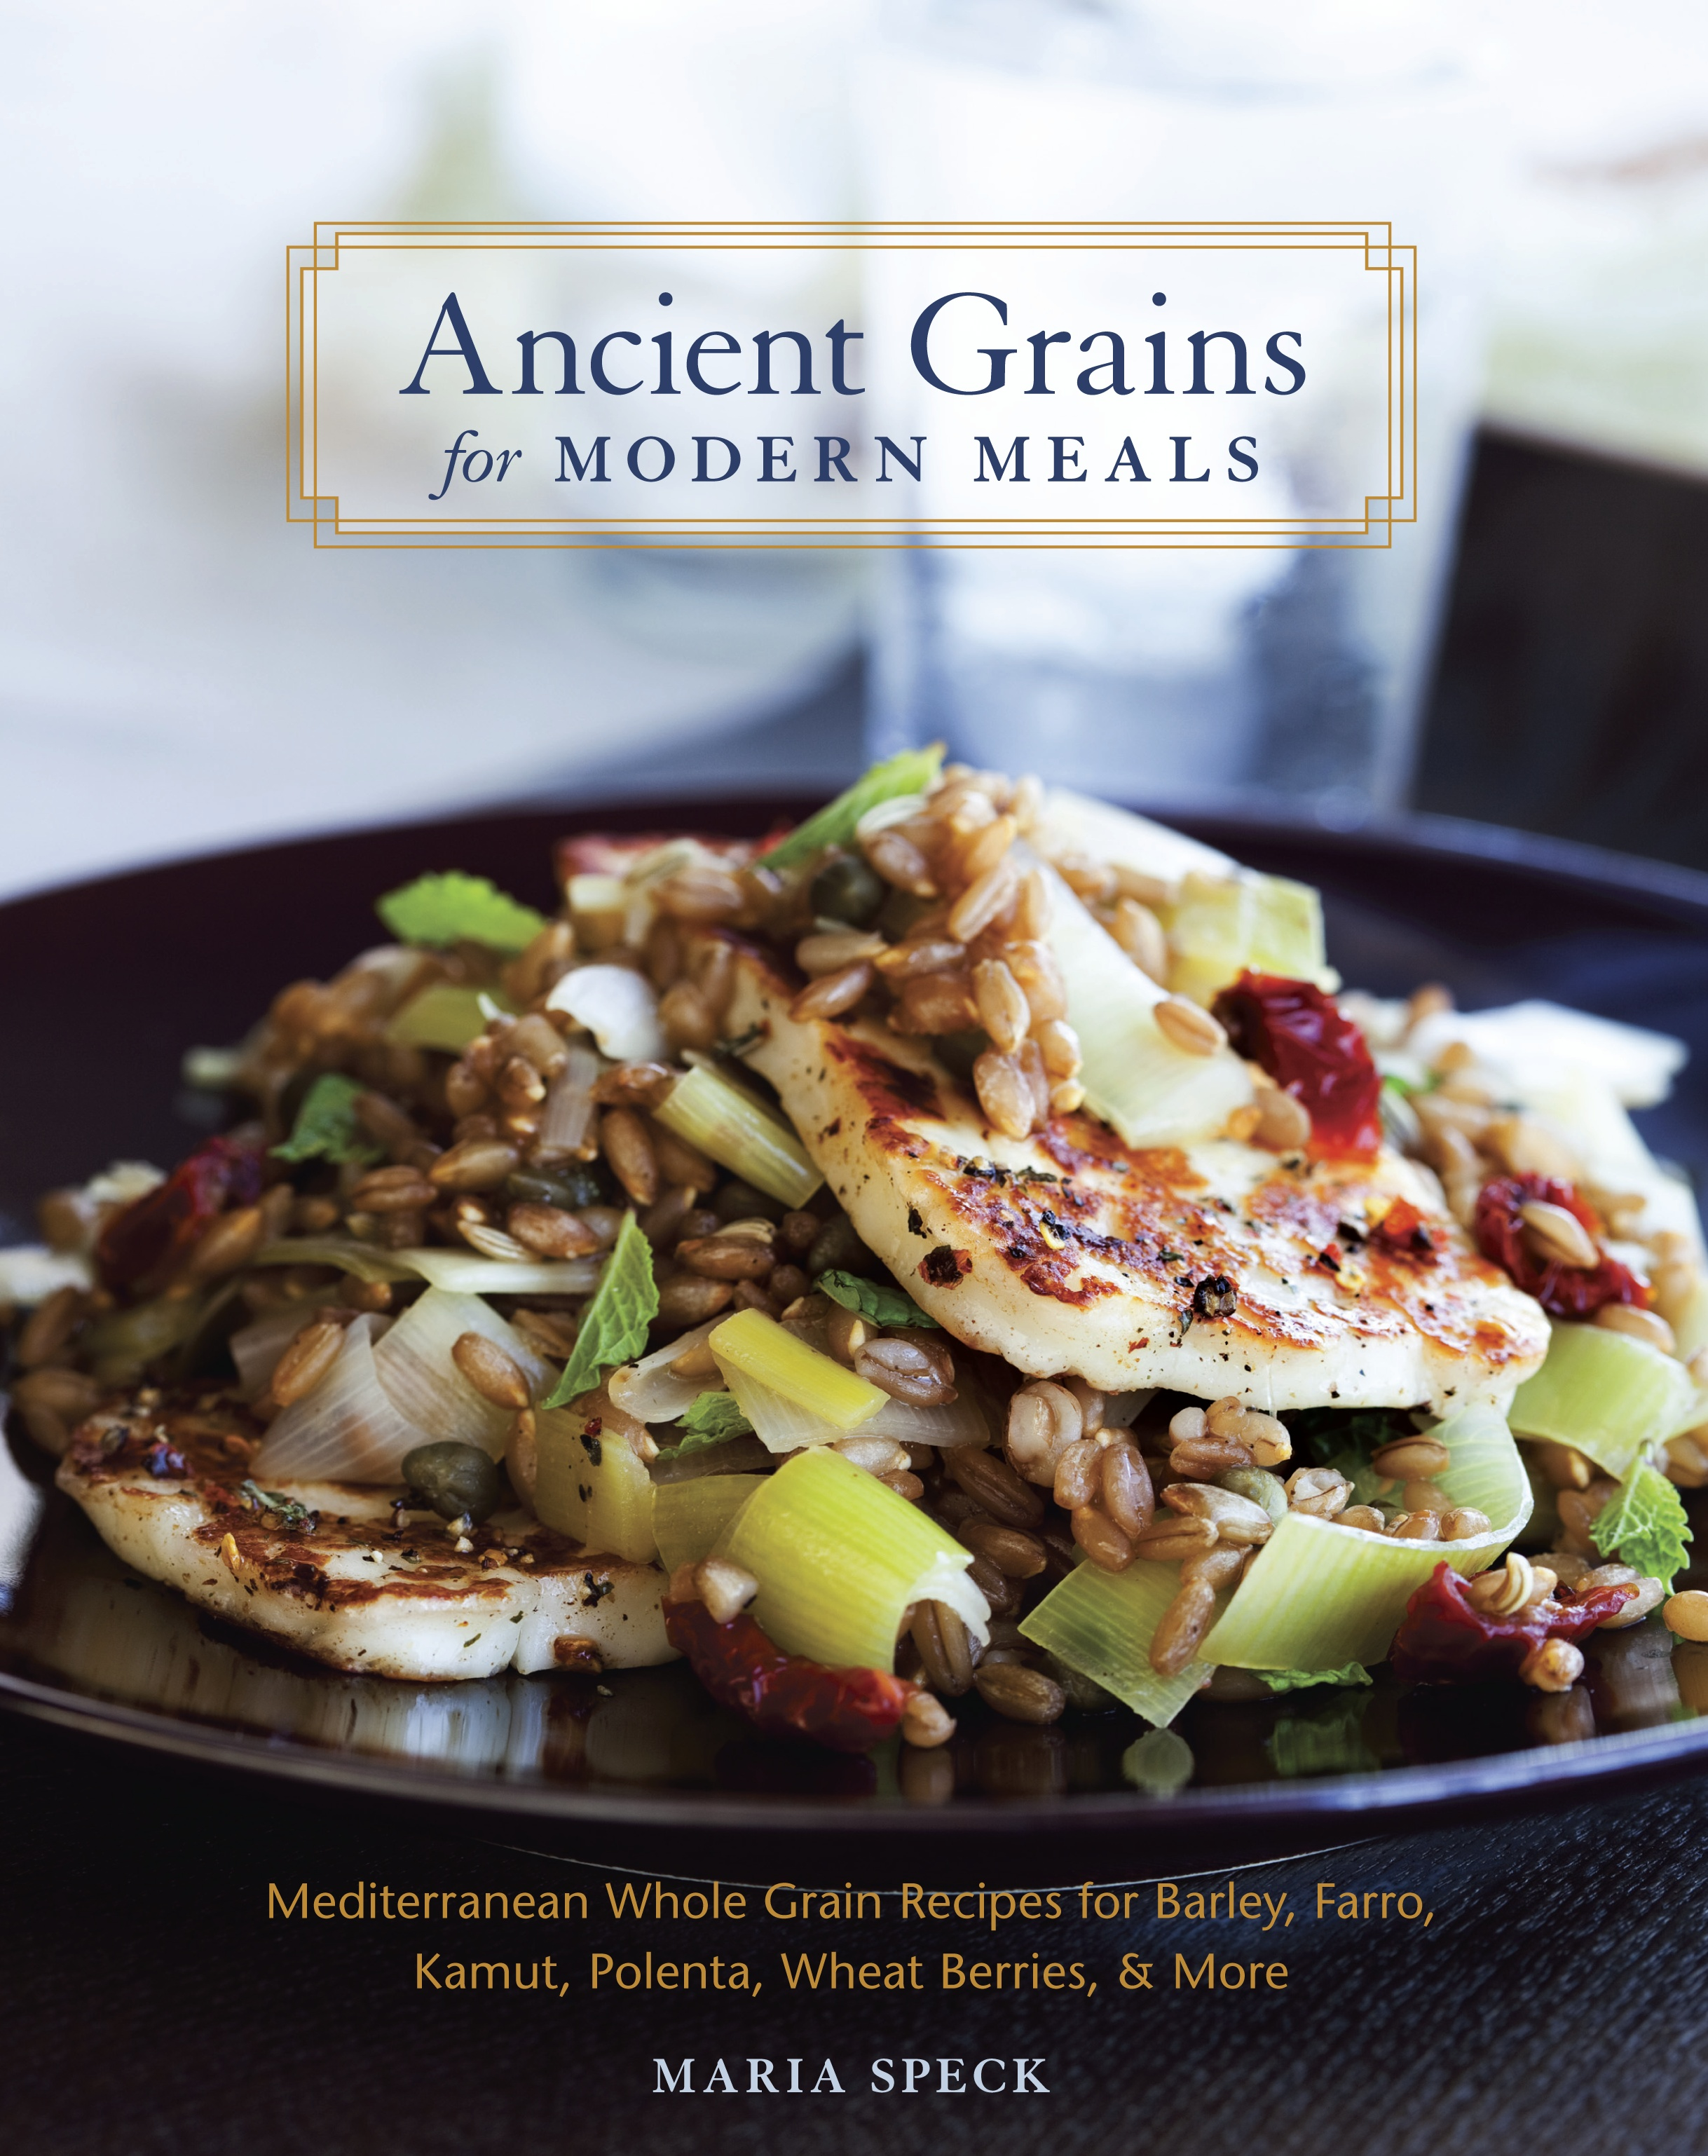 Ancient Grains cover